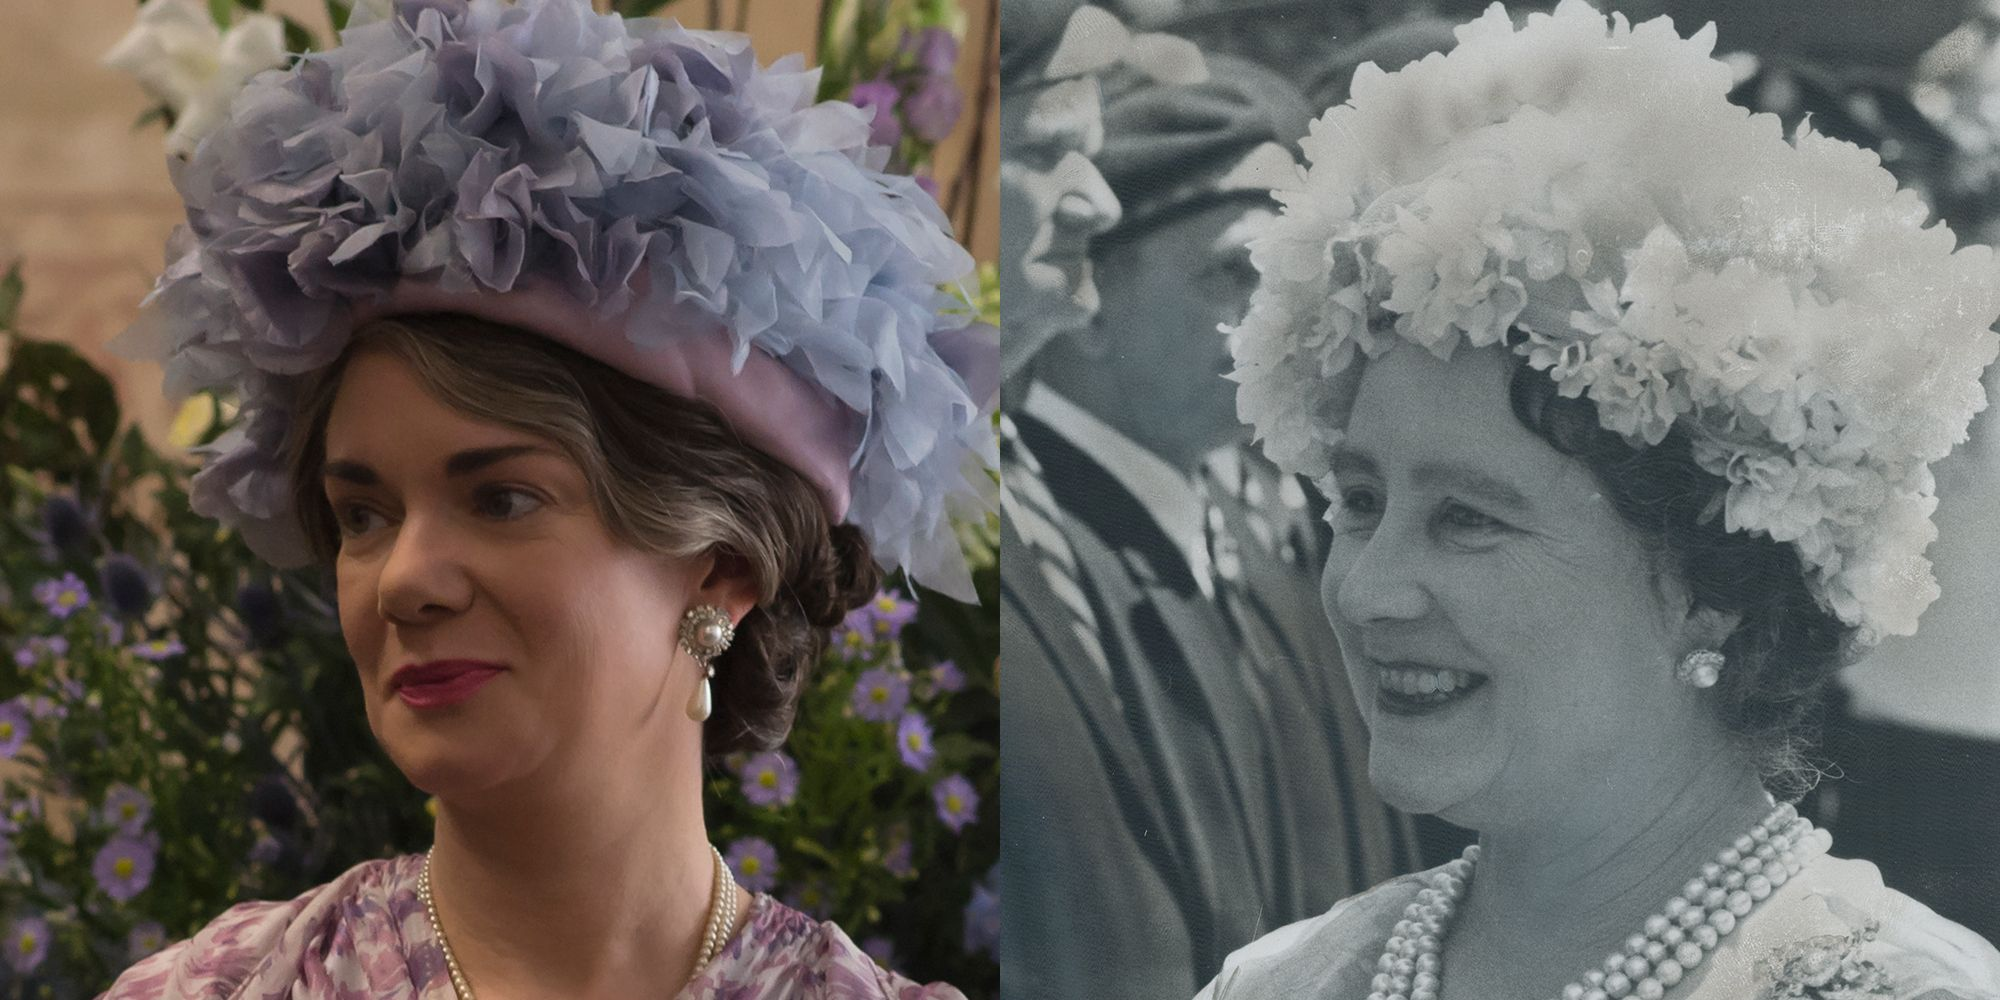 The Queen Mother (seasons 1 and 2)